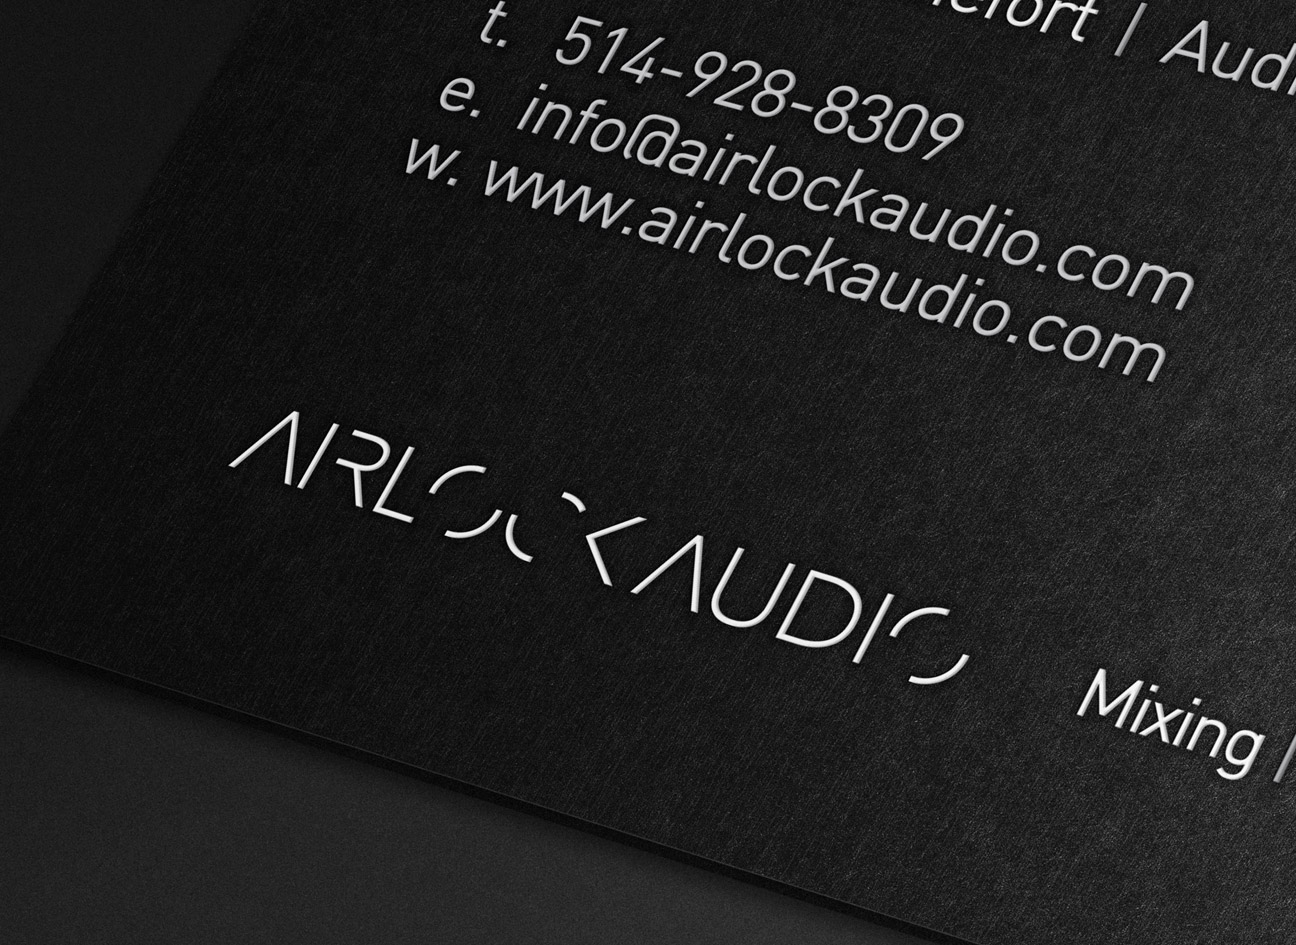 airlock_audio_cartes_zoom